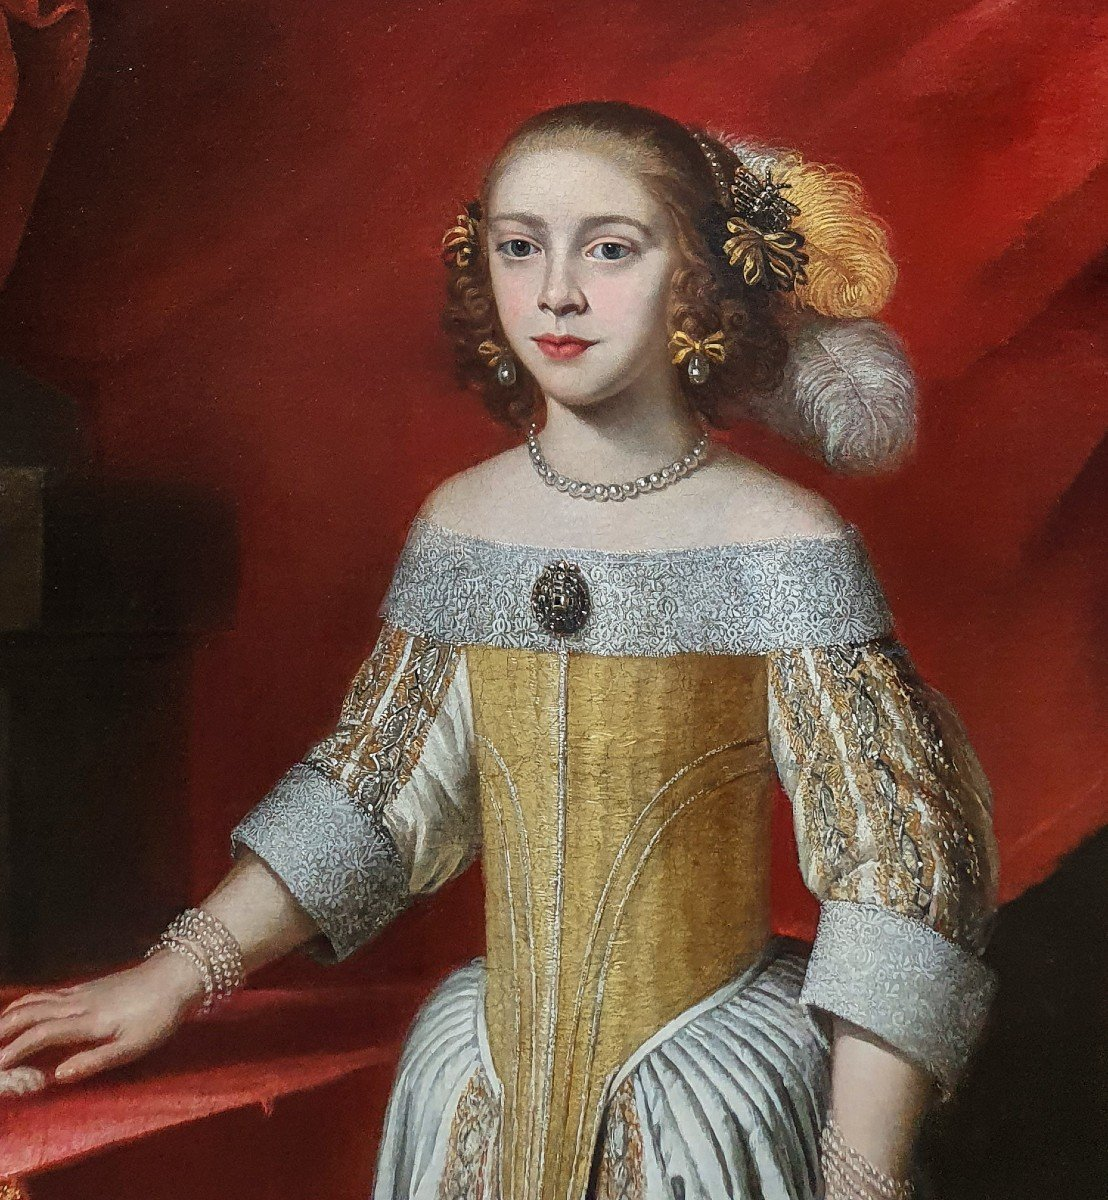 Portrait Of A Young Lady In An Interior With A Pet Dog, Circa 1650-60, Antique Oil Painting